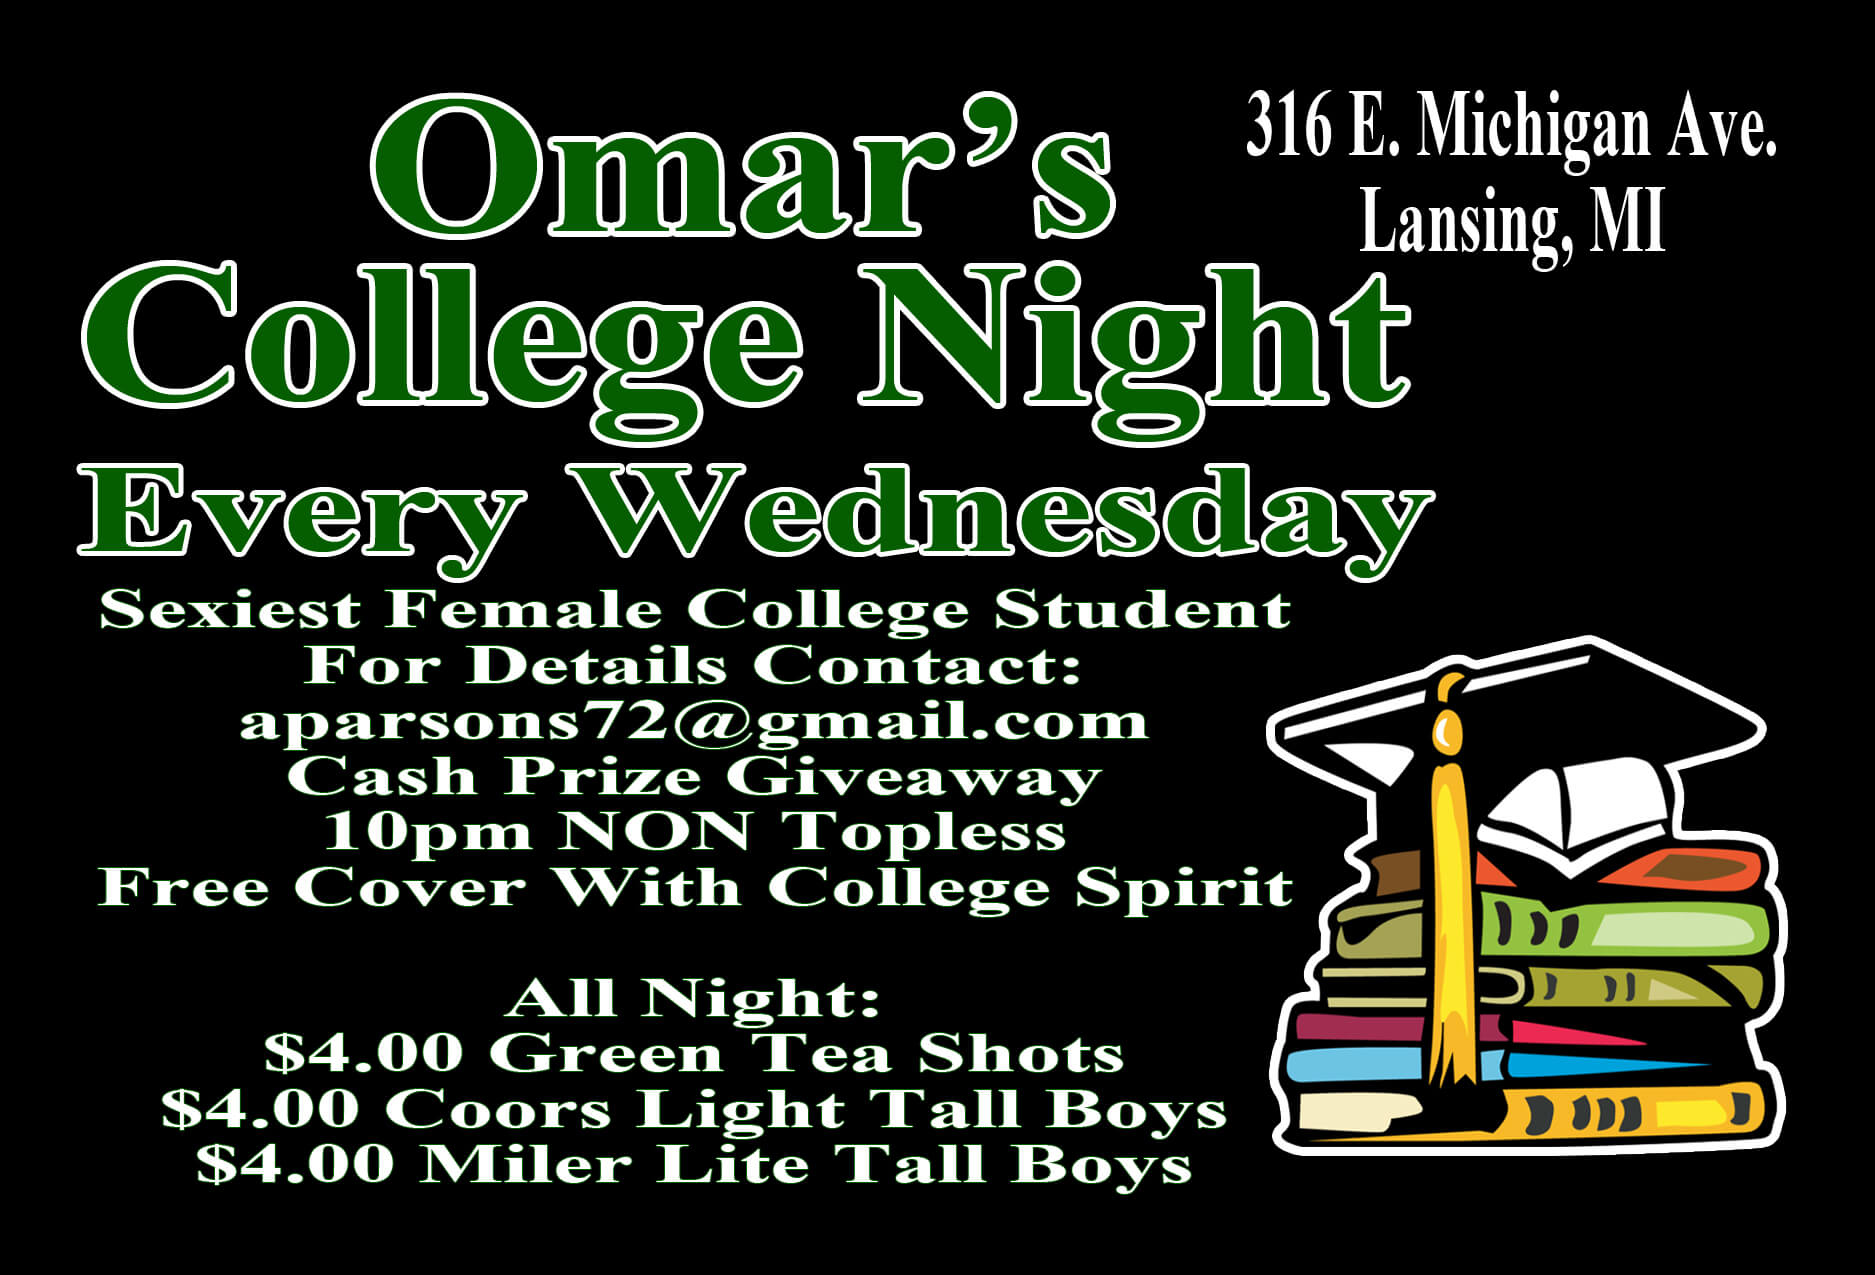 Omar's College Night